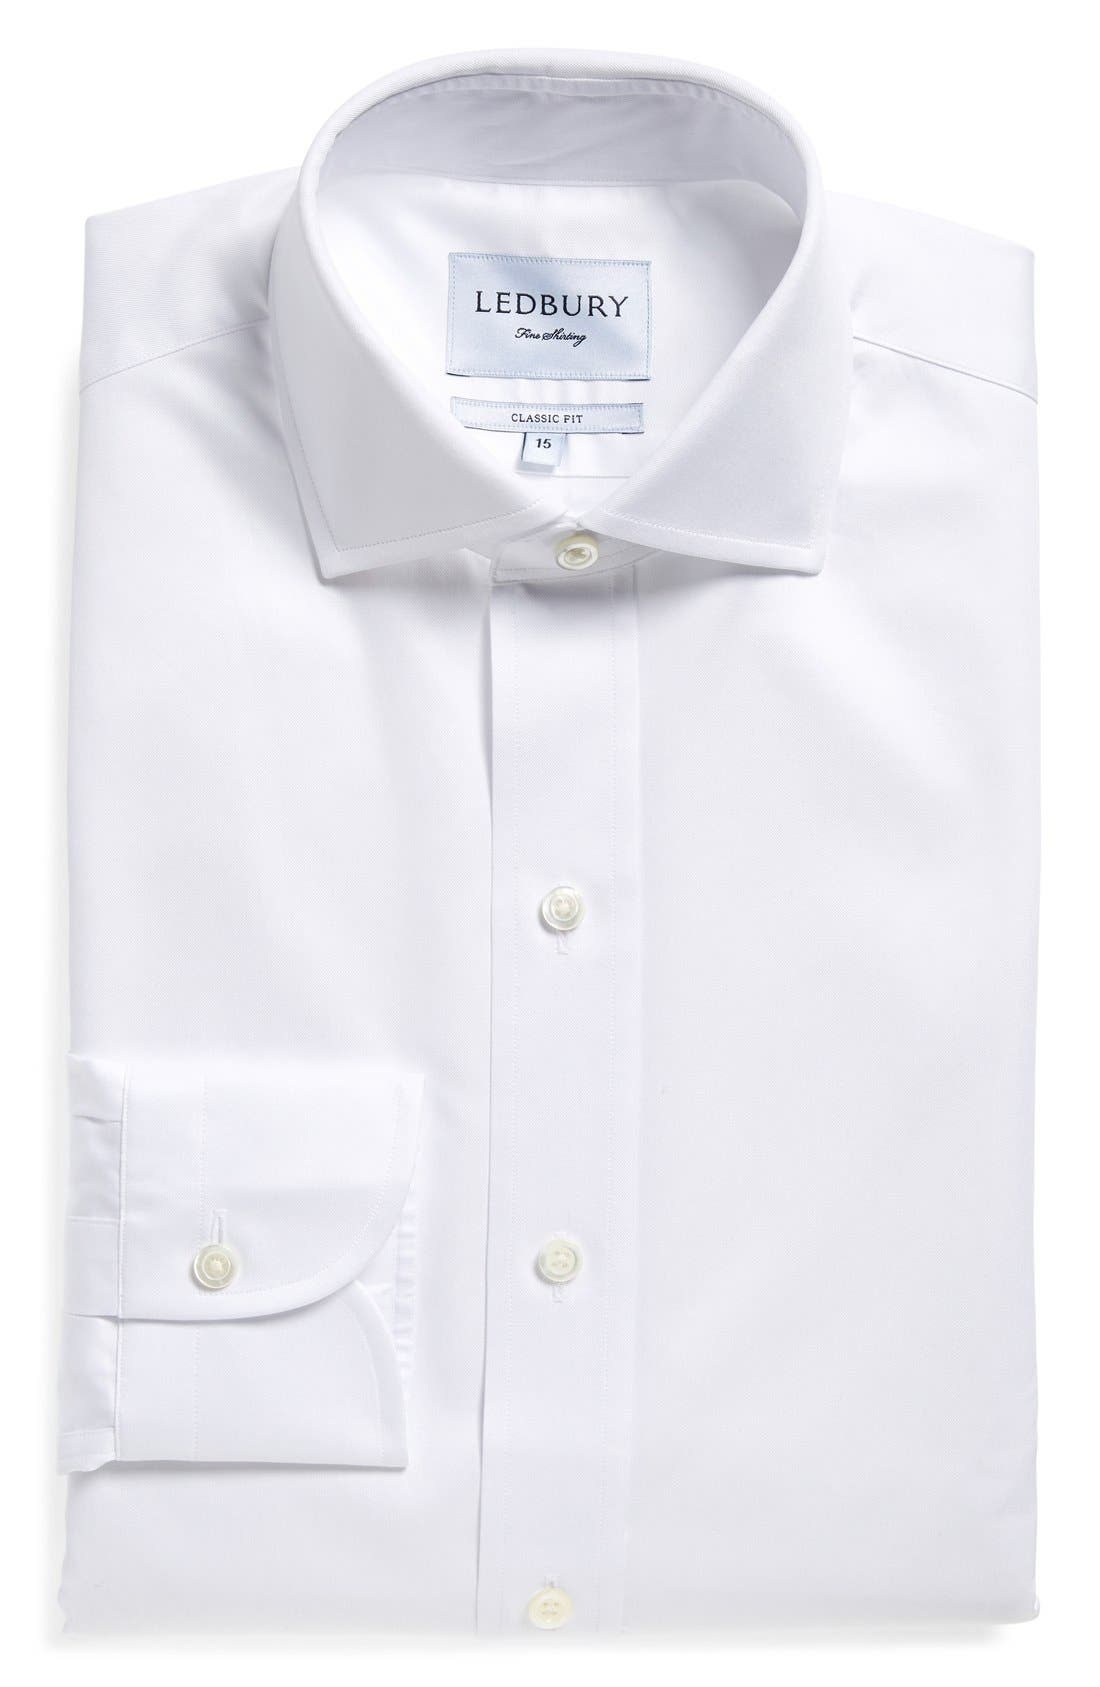 Ledbury Classic Fit Fine Twill Dress Shirt